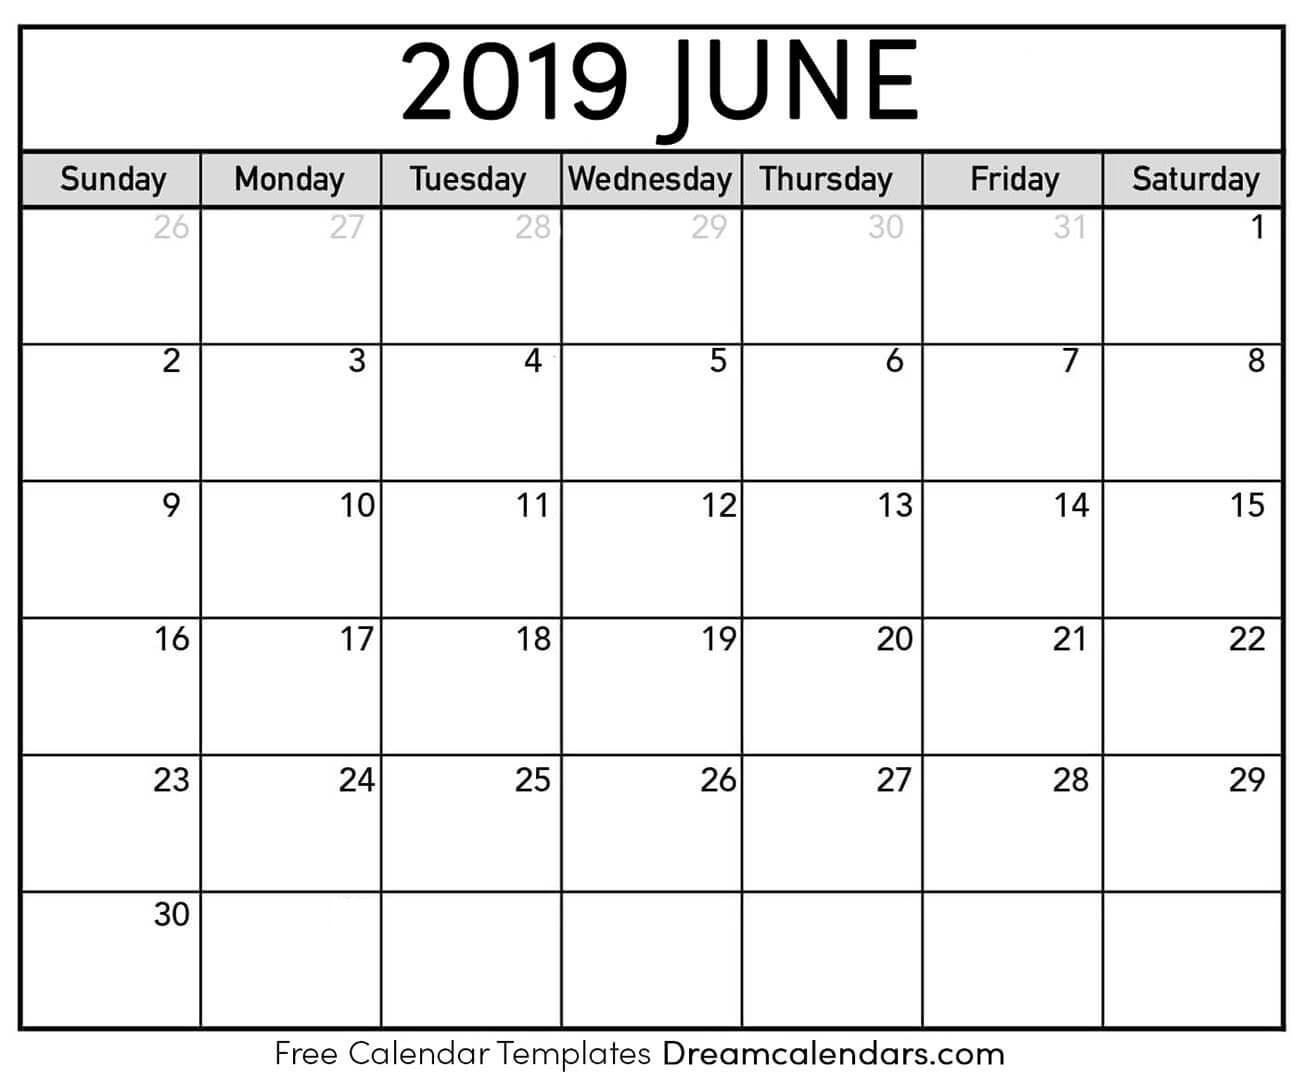 photograph about June Printable Calendar called Printable June 2019 Calendar